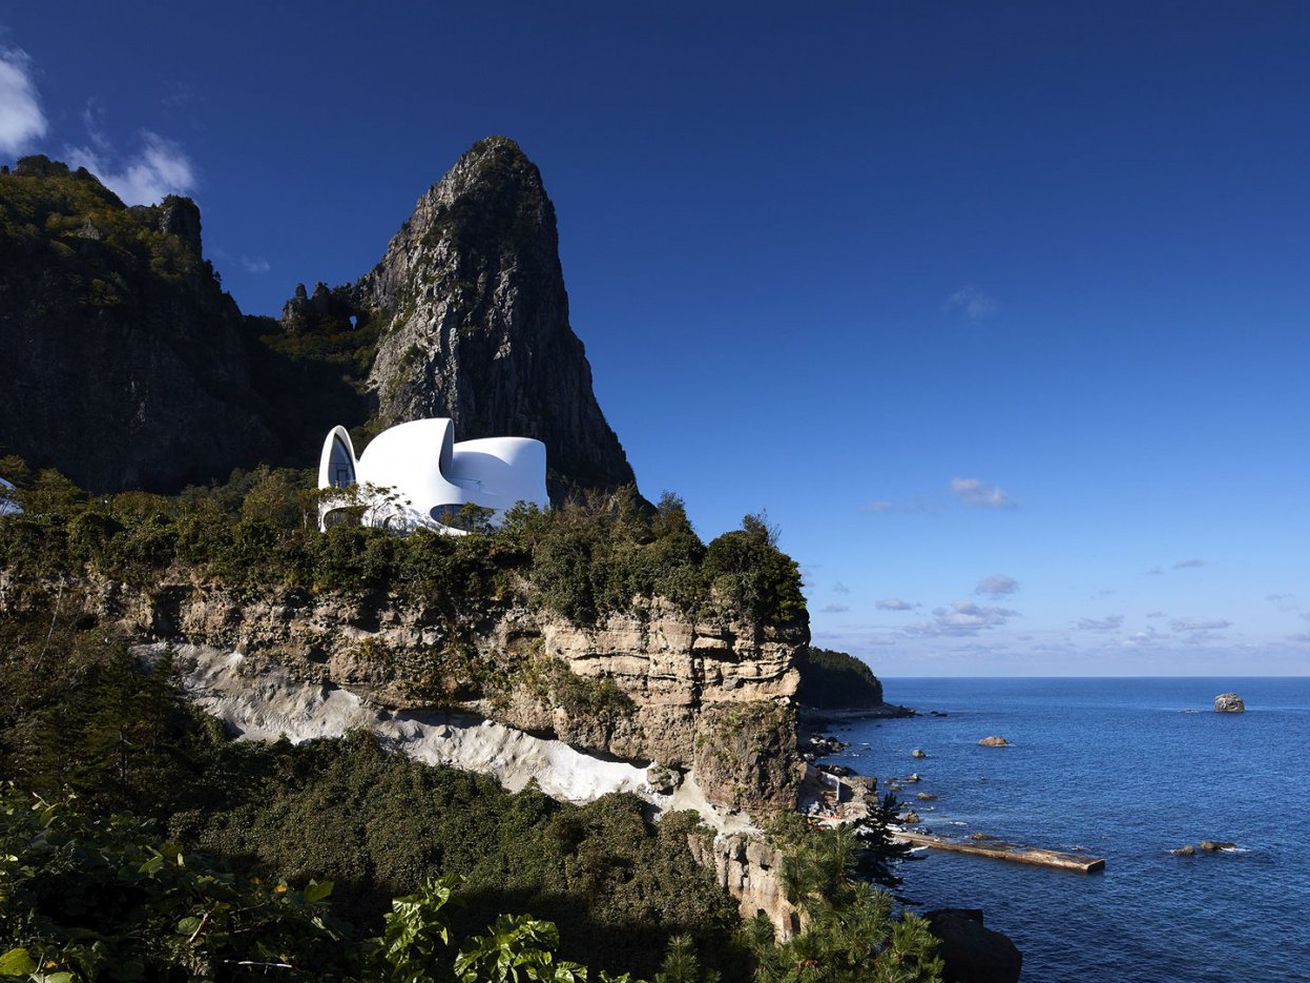 The Villa Kosmos sits on the edge of a cliff on South Korea's Ulleungdo island.